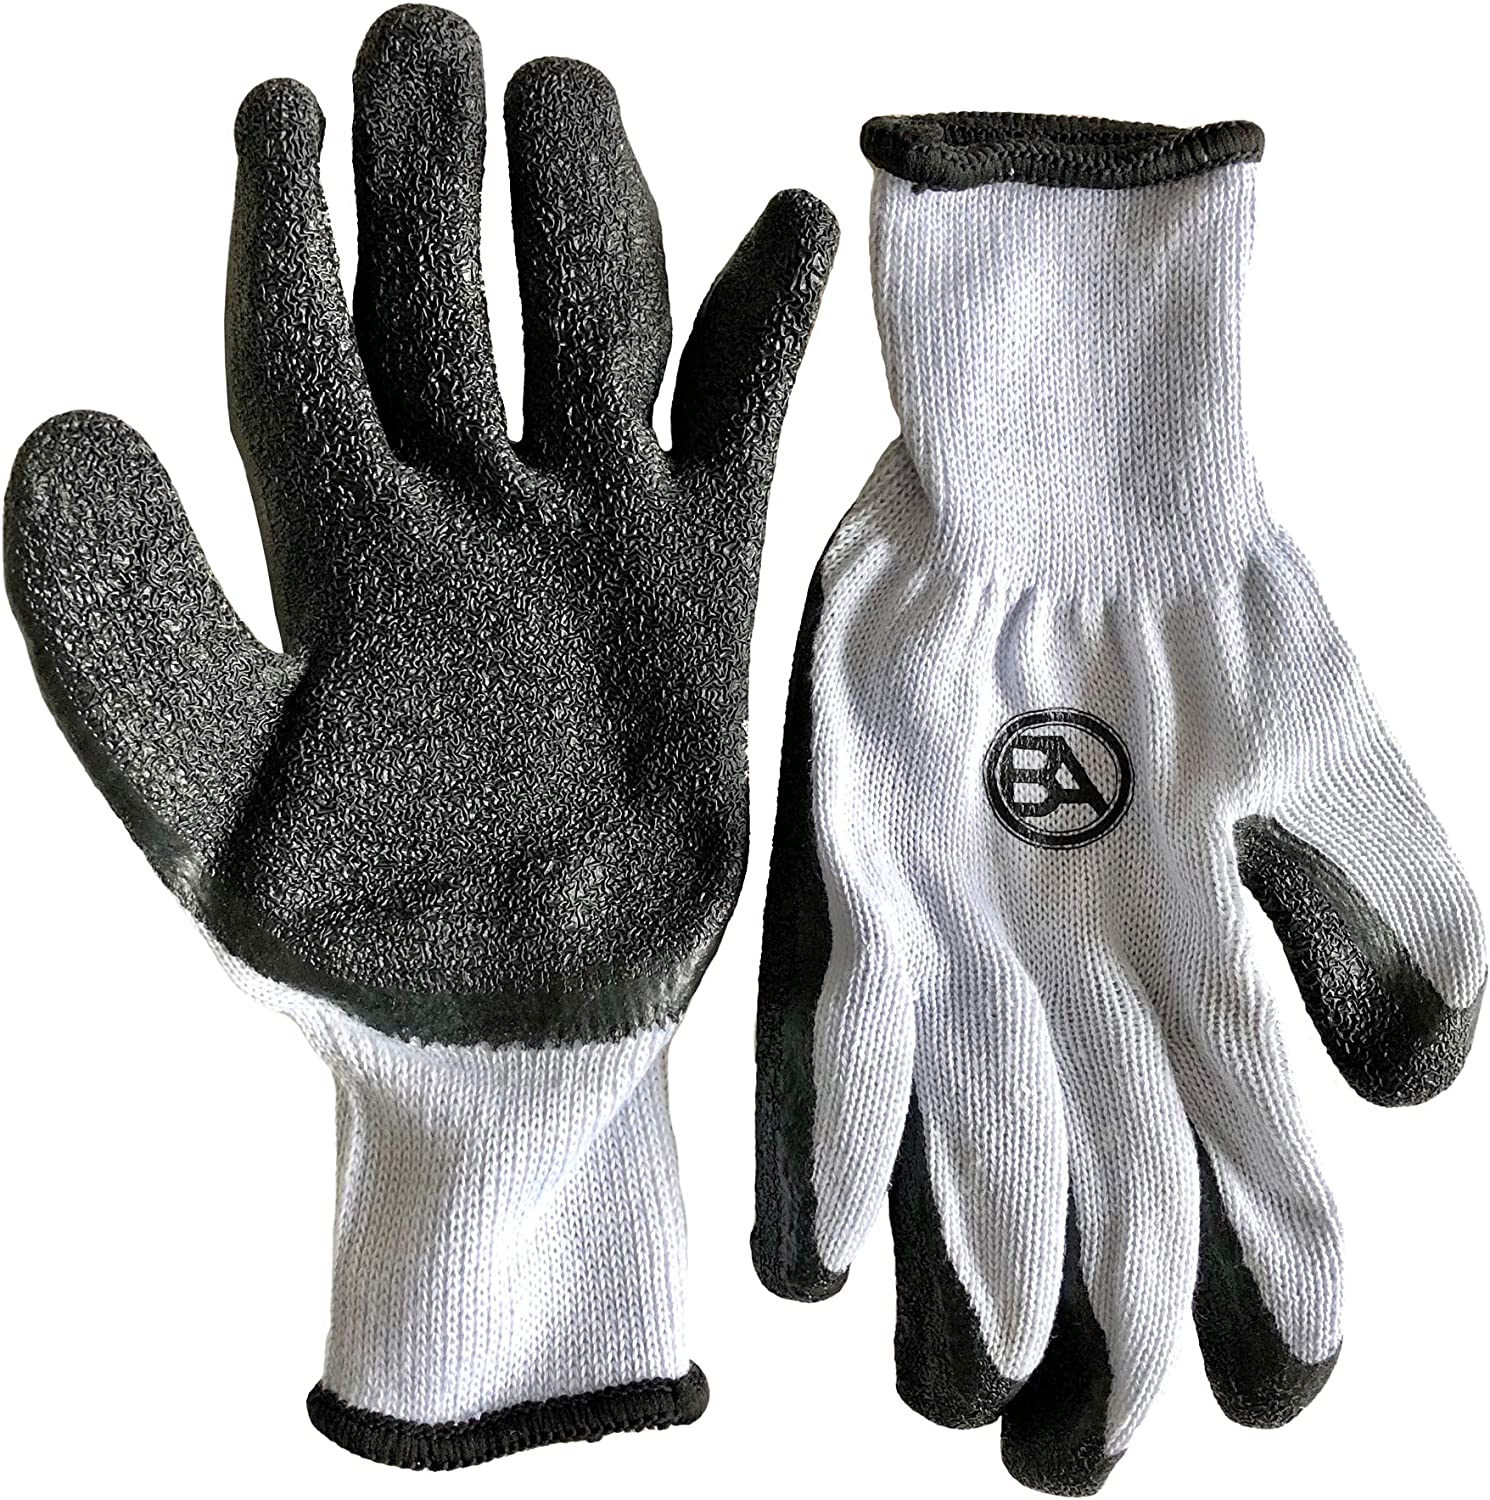 Black Anchor 2-Pairs Fishing Gloves Rubber Coated   Gray Cotton, Black Rubber, Fit Medium to Large : Sports & Outdoors